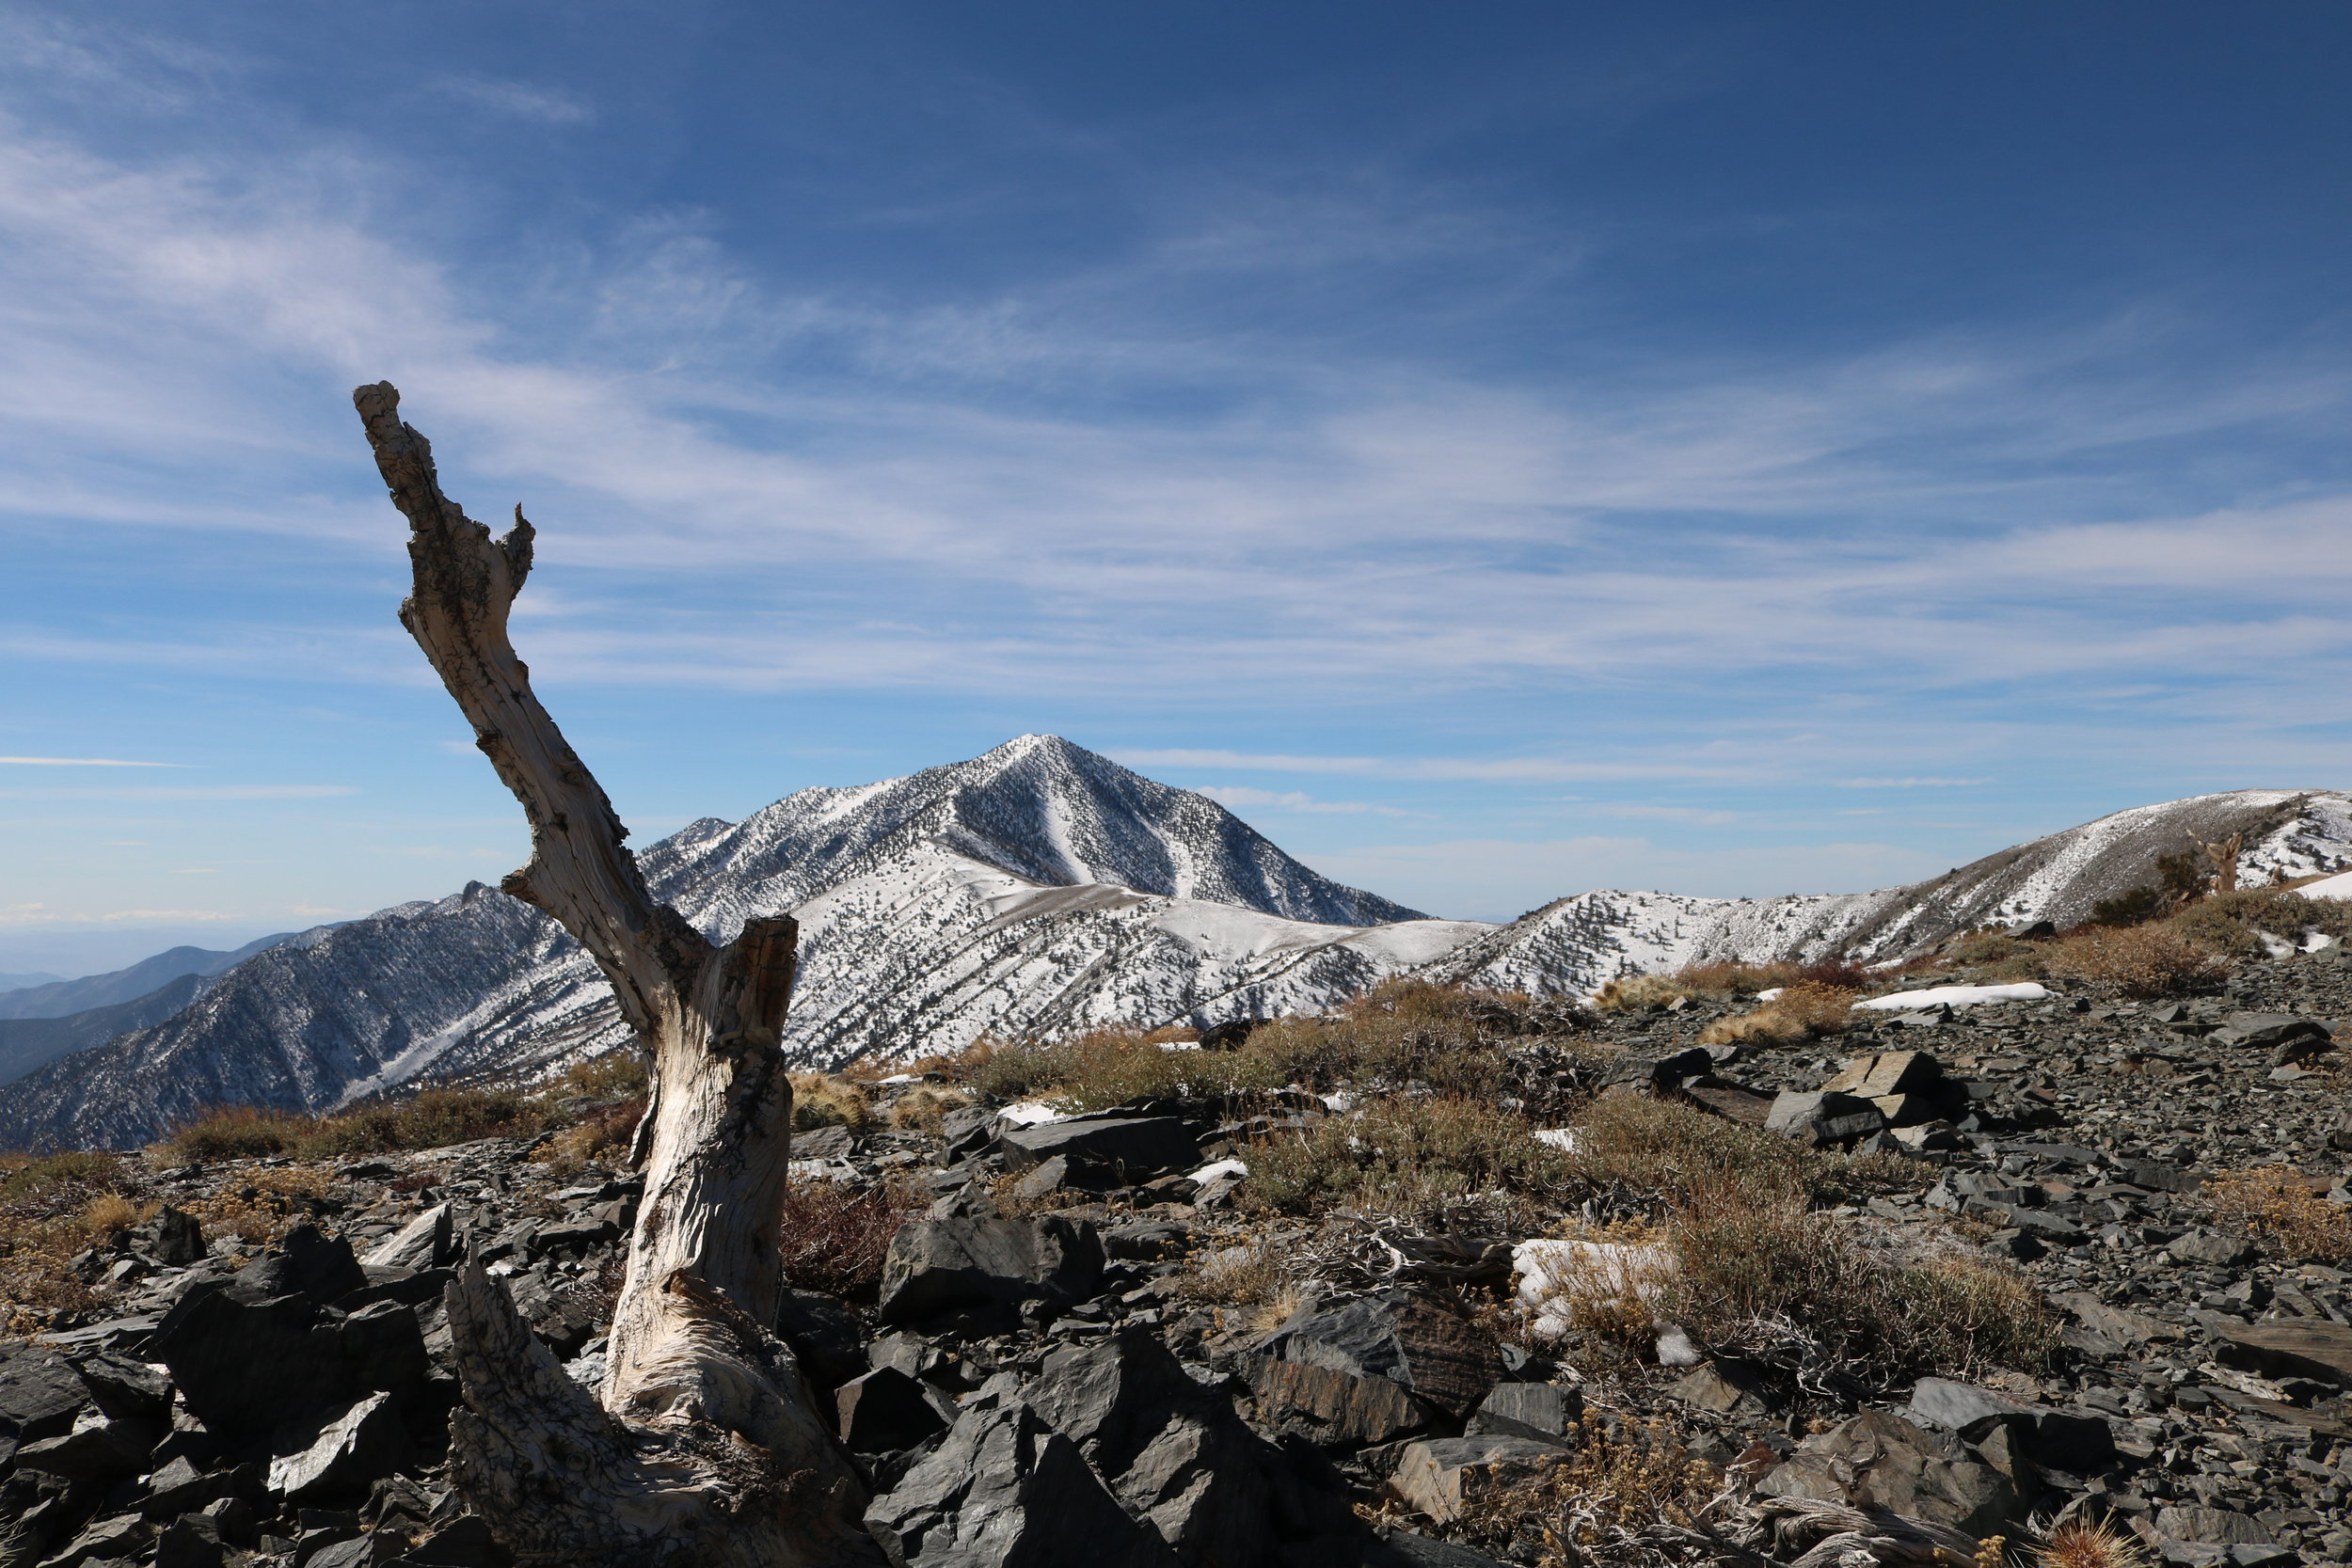 Telescope Peak is the highest point in the Panamint Range, and in Death Valley